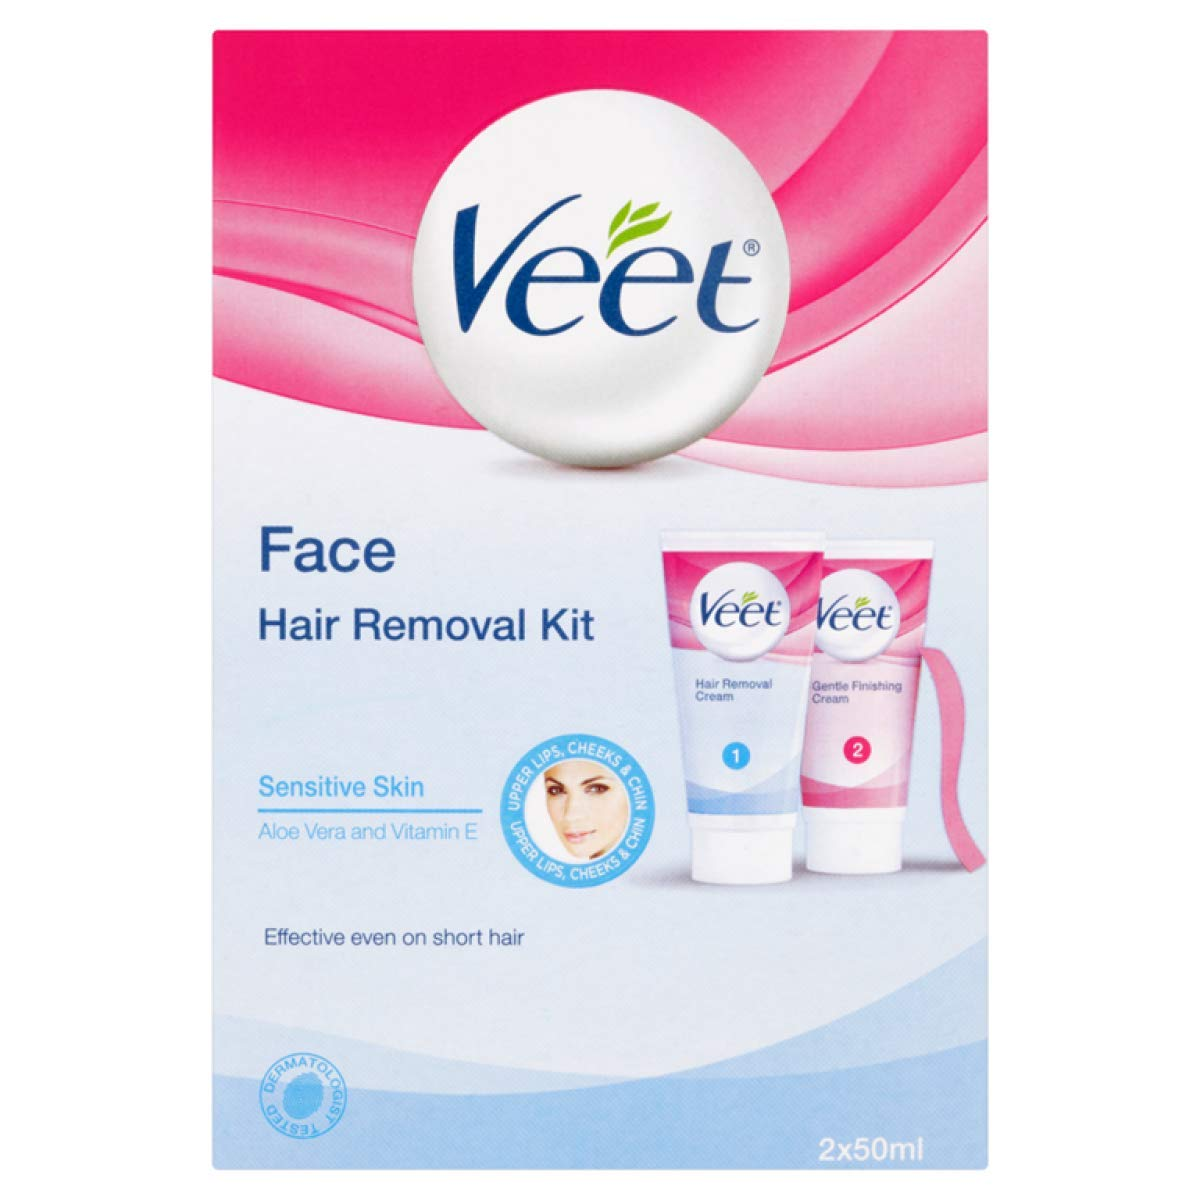 Veet Facial Hair Remover Kit Sensitive Formula, Hair Removal and Finishing Cream Included - 1.69 Fl Oz / 50 mL ea x 2 Pack